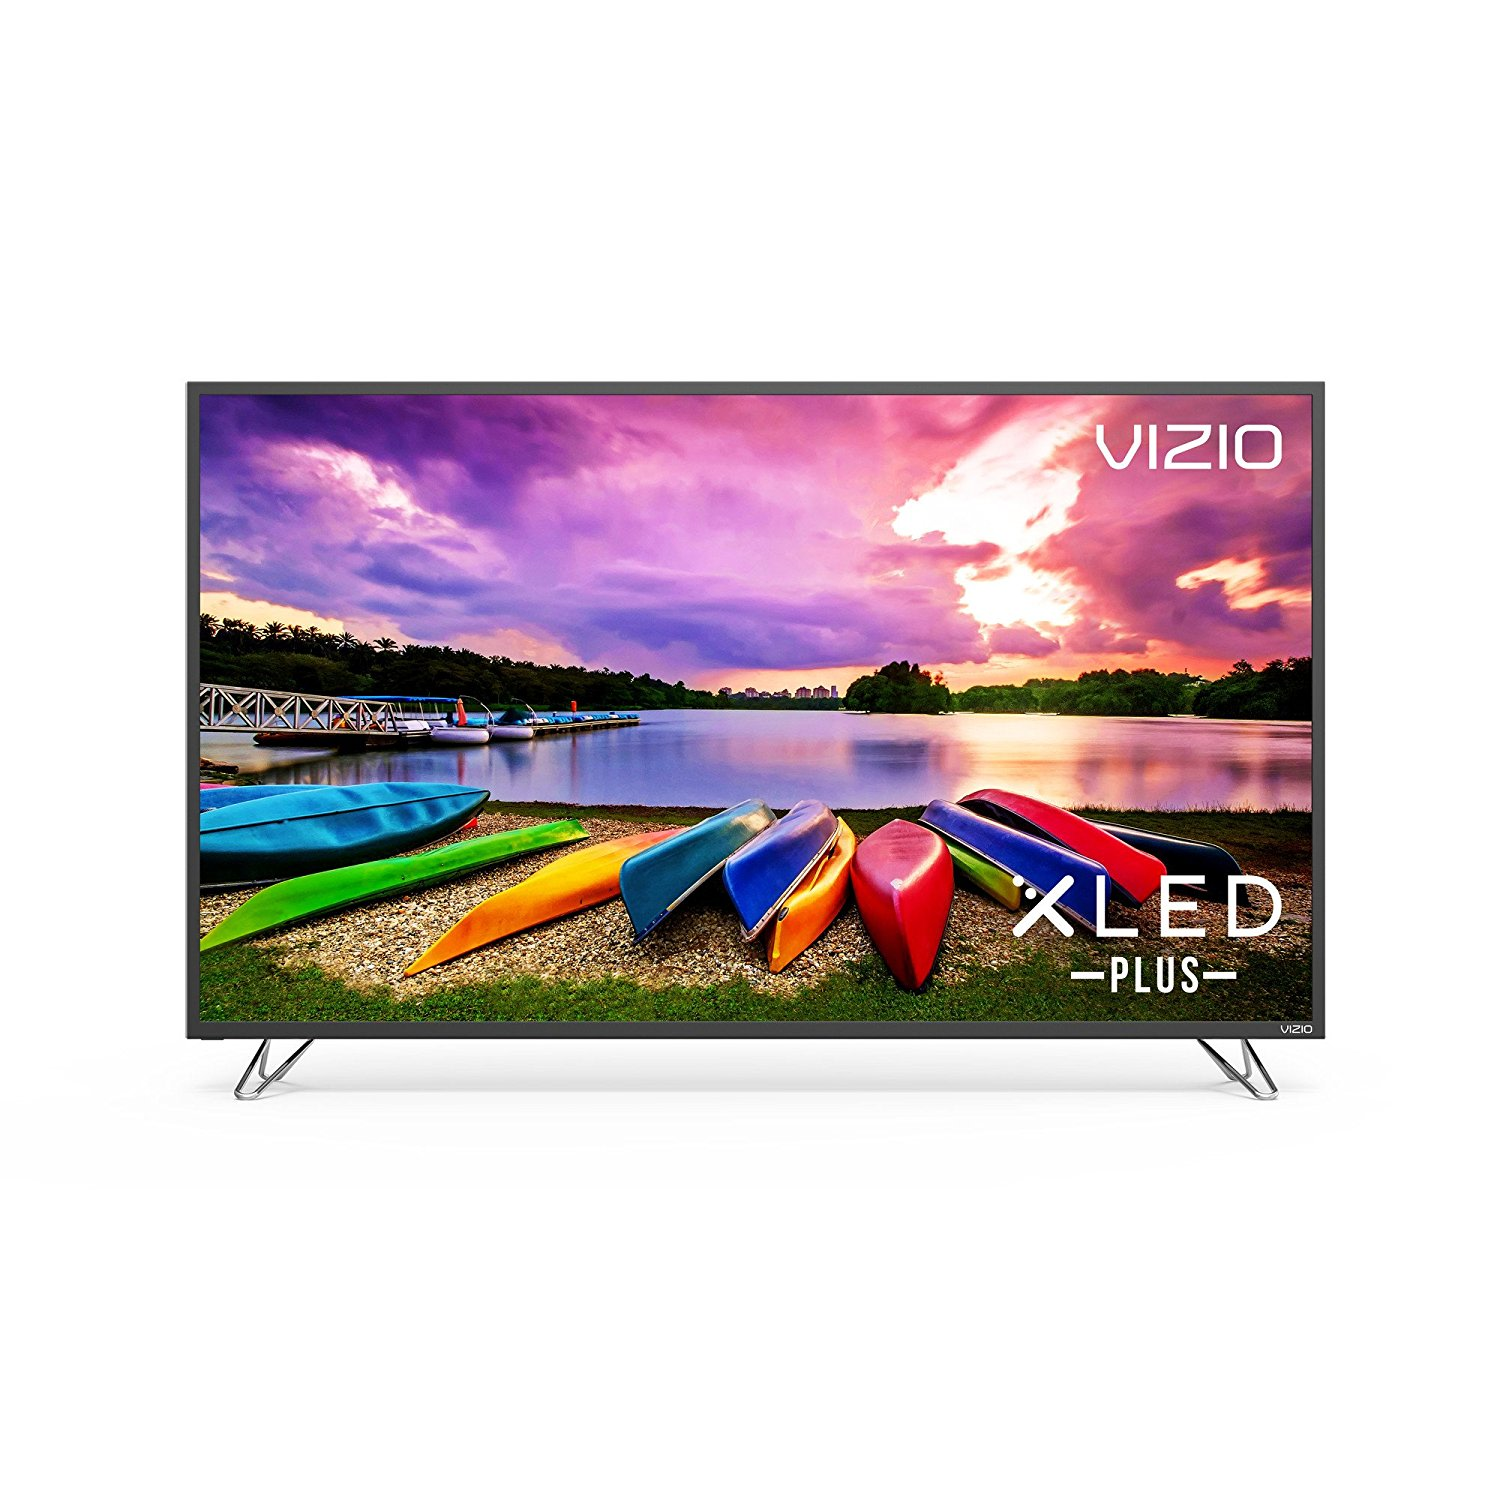 An image of VIZIO M65-E0 65-Inch HDR Flat Screen 4K LED 120Hz Smart TV with VIZIO Clear Action 360